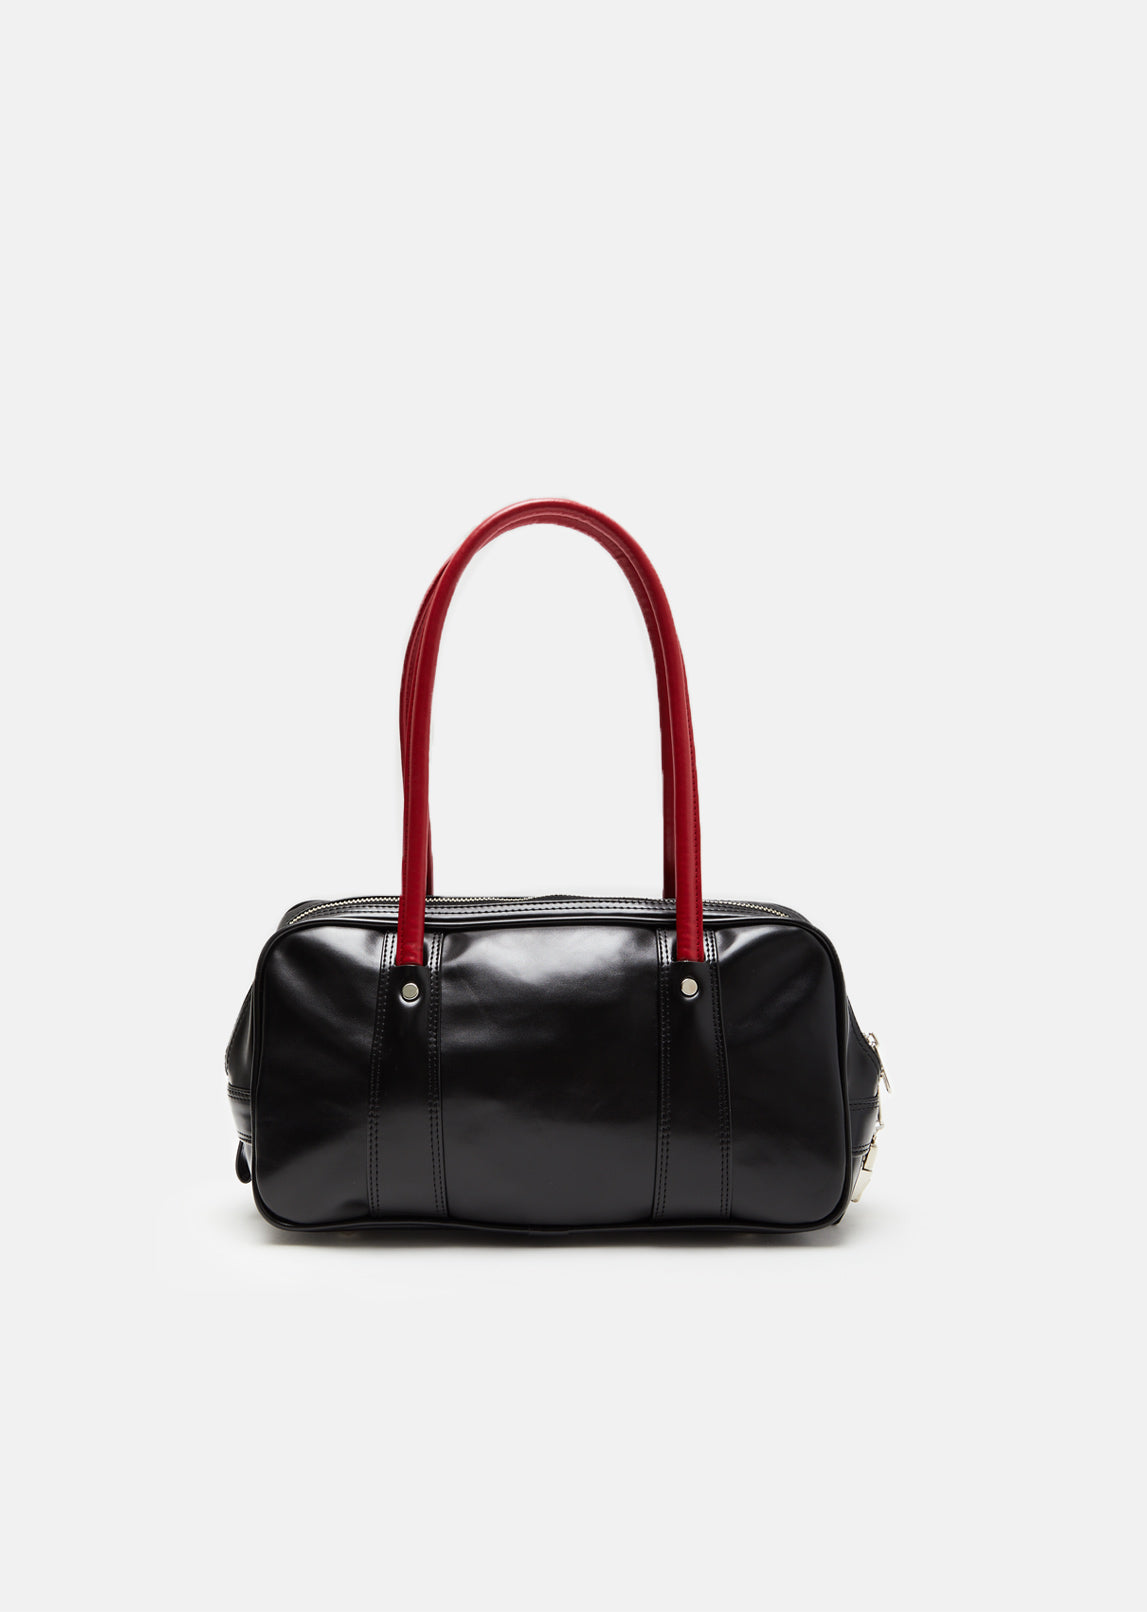 ACE Synthetic Leather Bag